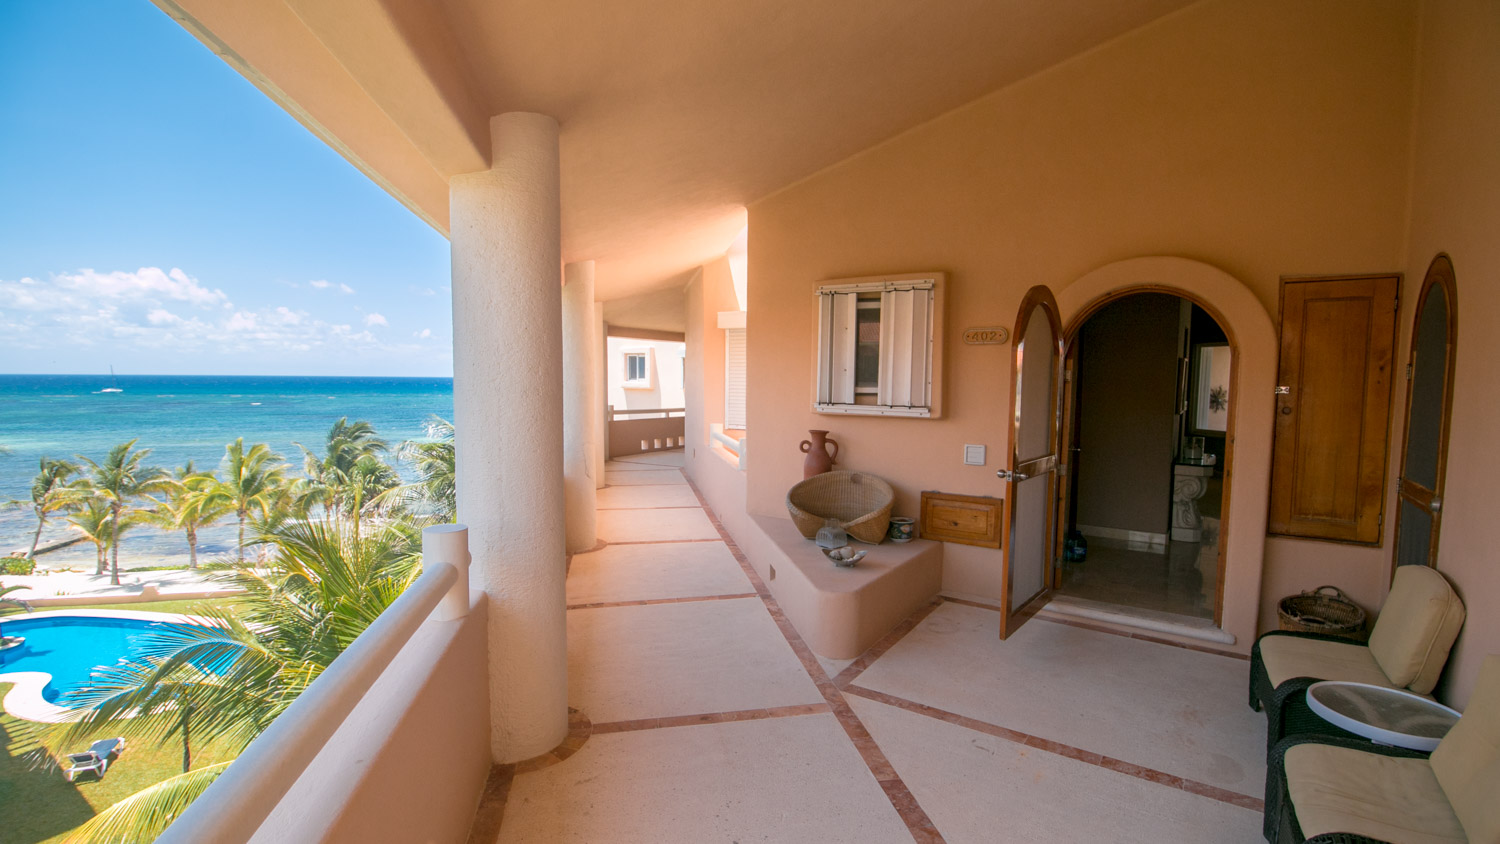 Breathtaking 2 bedroom Penthouse in Puerto Aventuras.